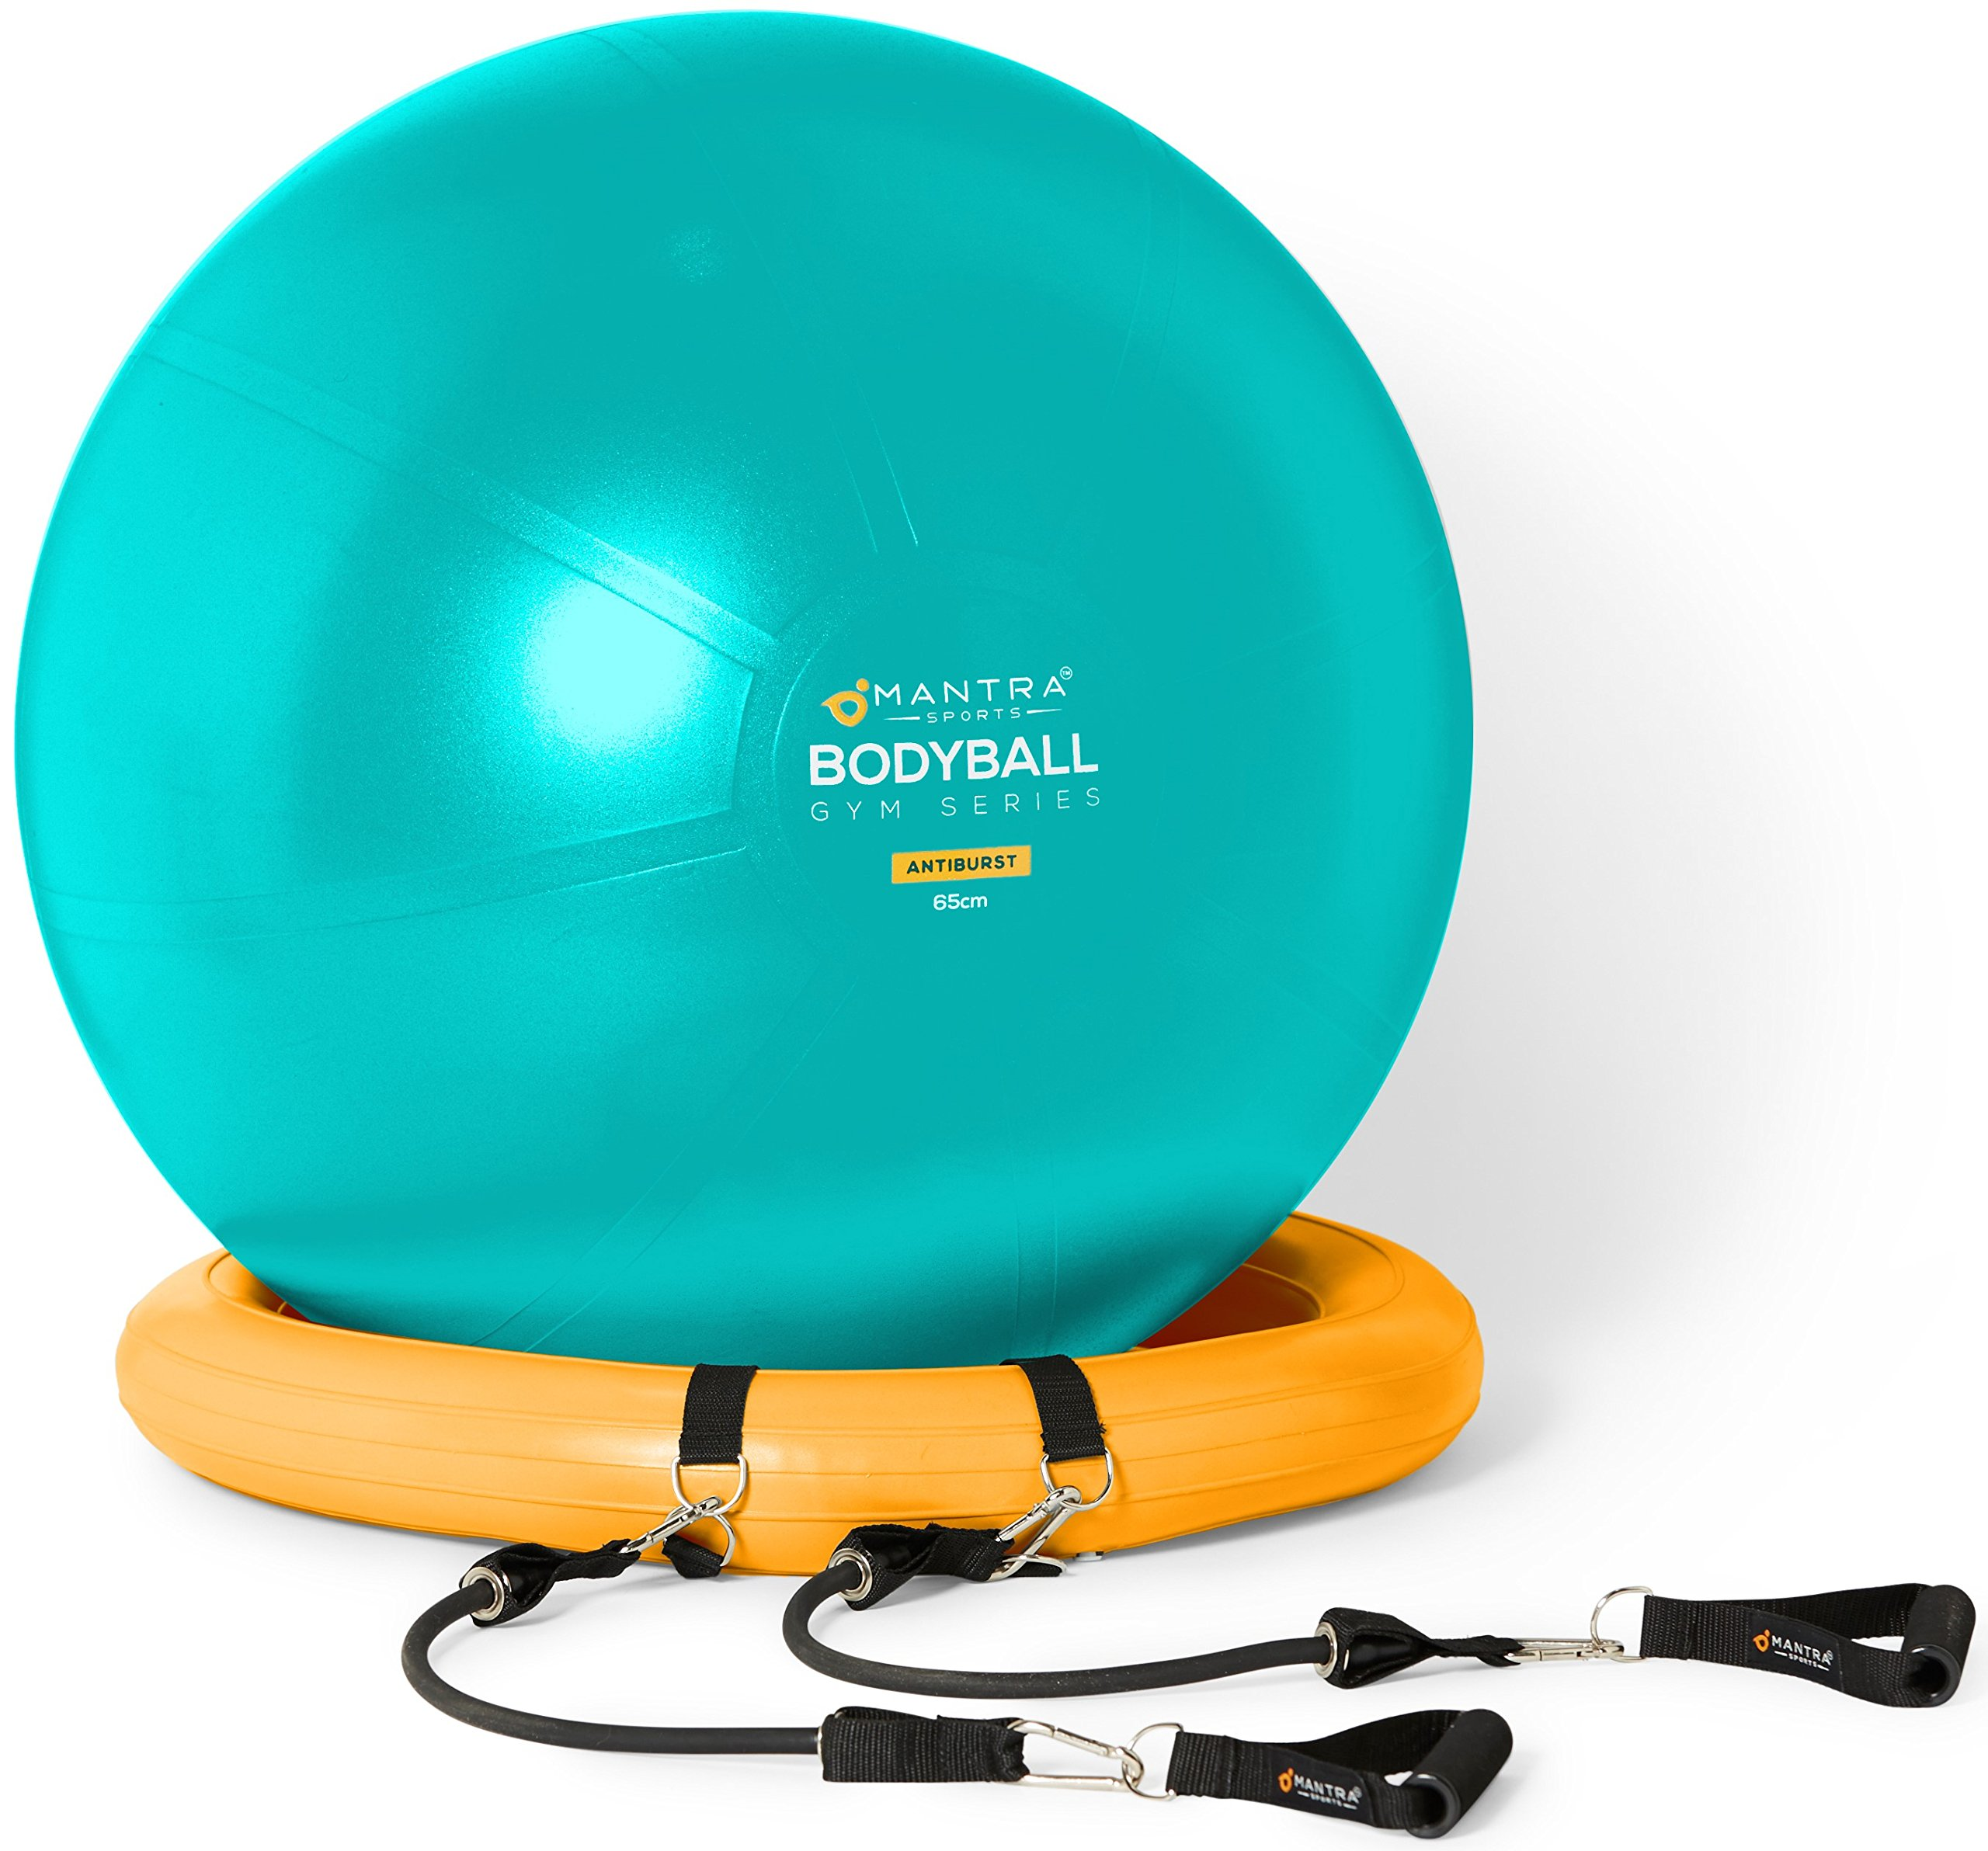 Exercise Ball Chair - 65cm 75cm Yoga Fitness Pilates Ball Stability Base  for Home Gym Office - Resistance Bands d3f0300095f2